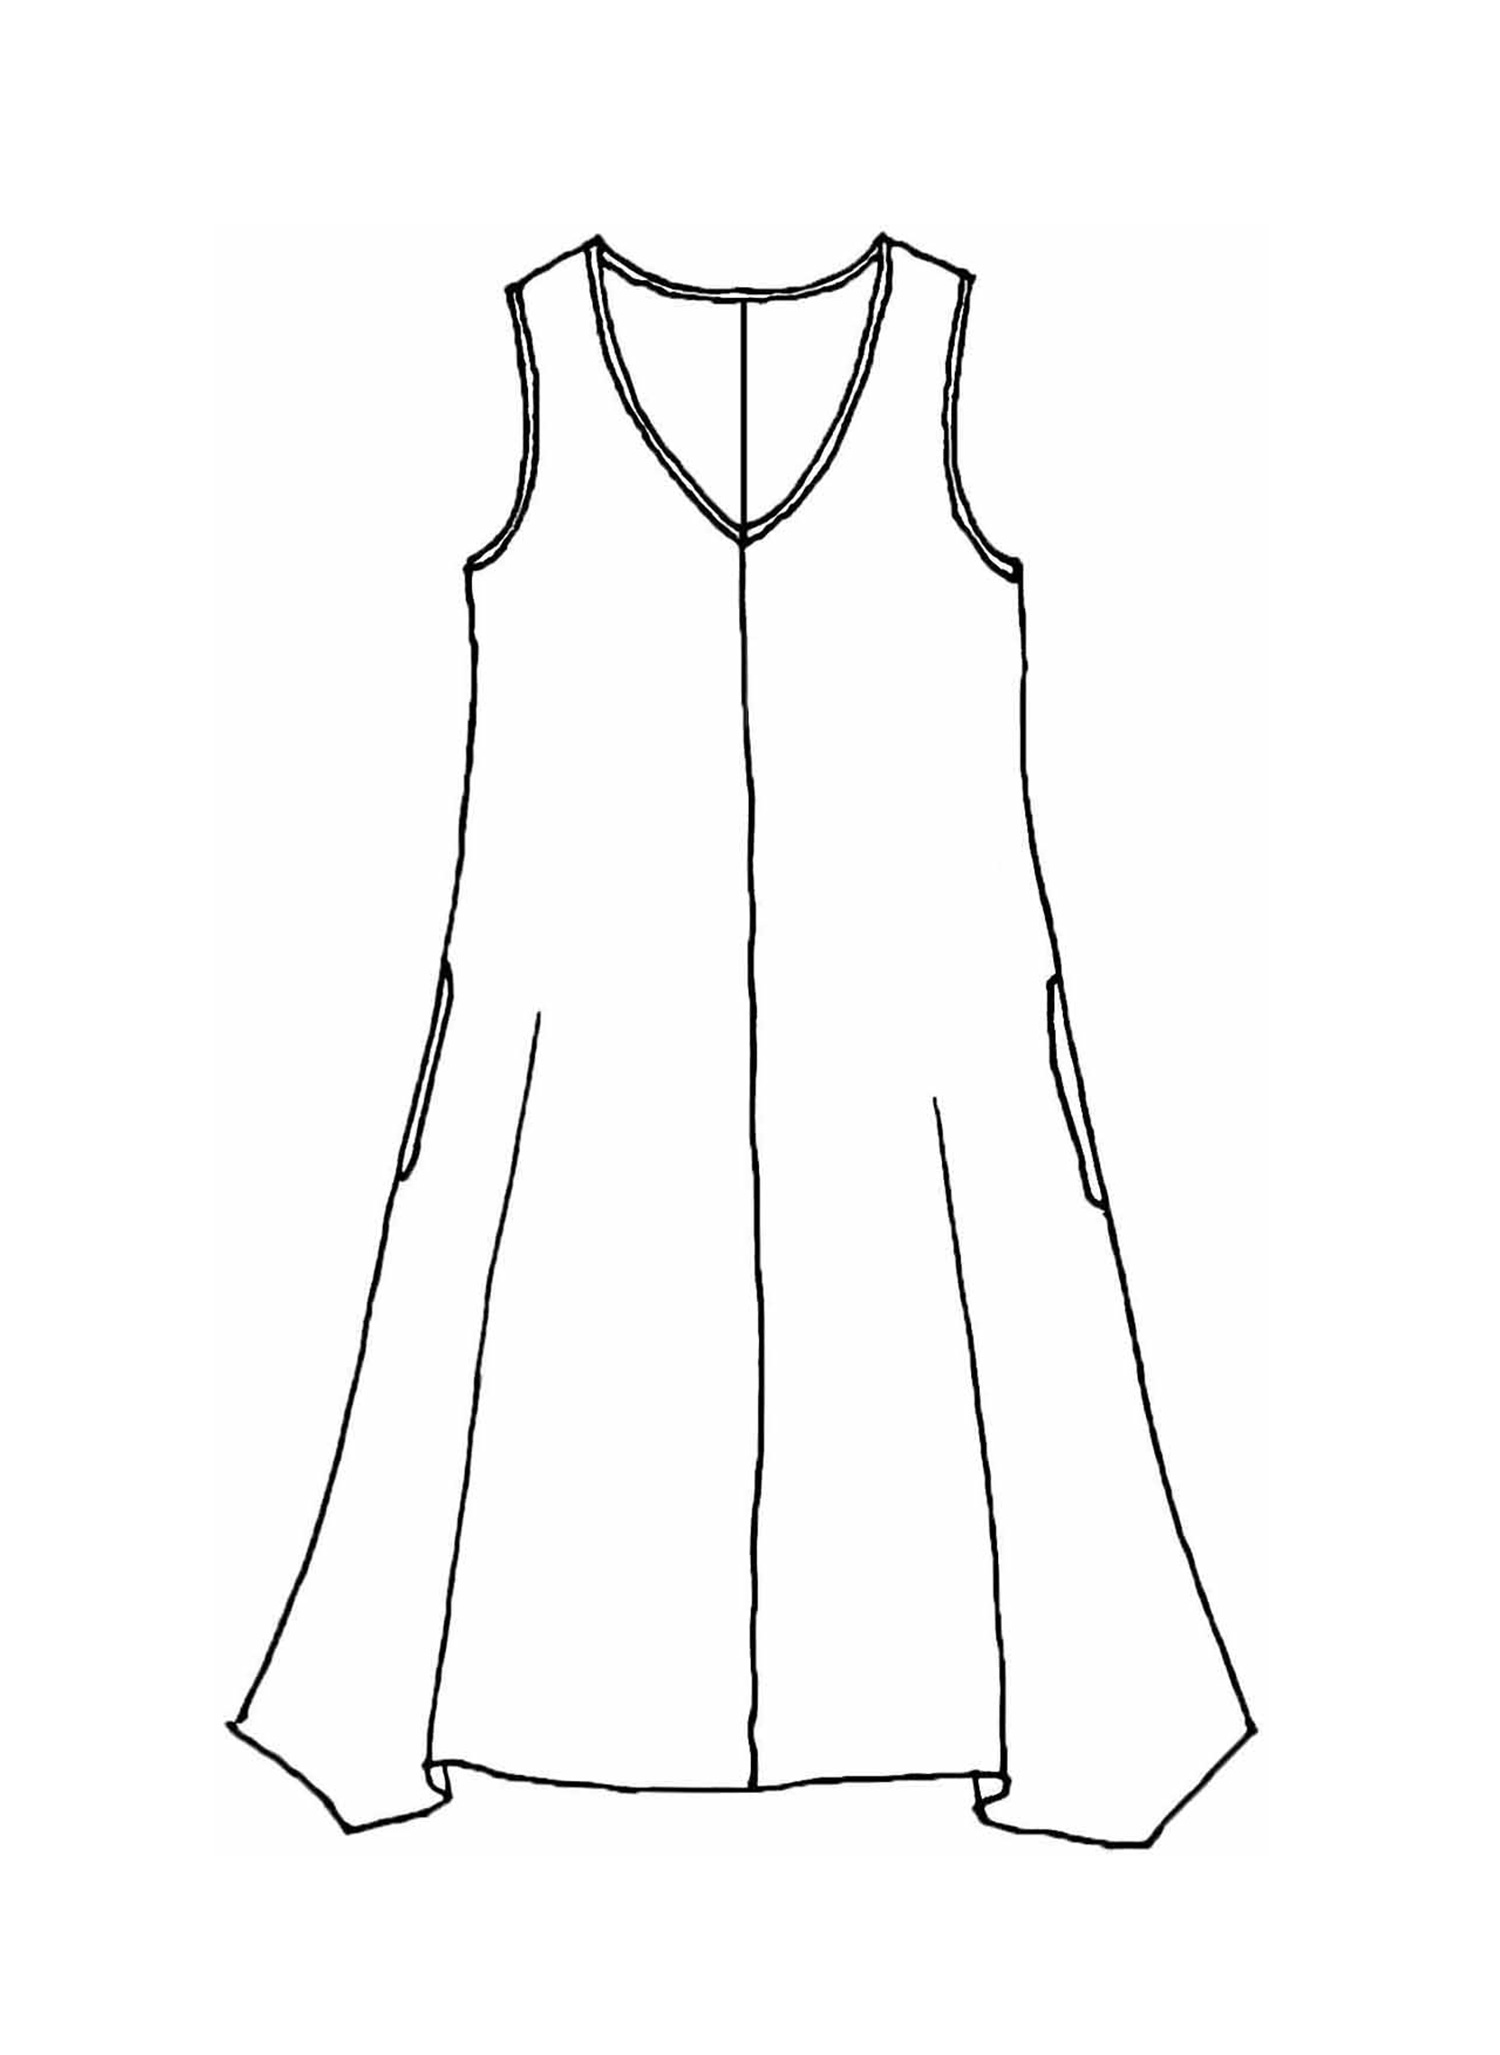 Hem Dress sketch image